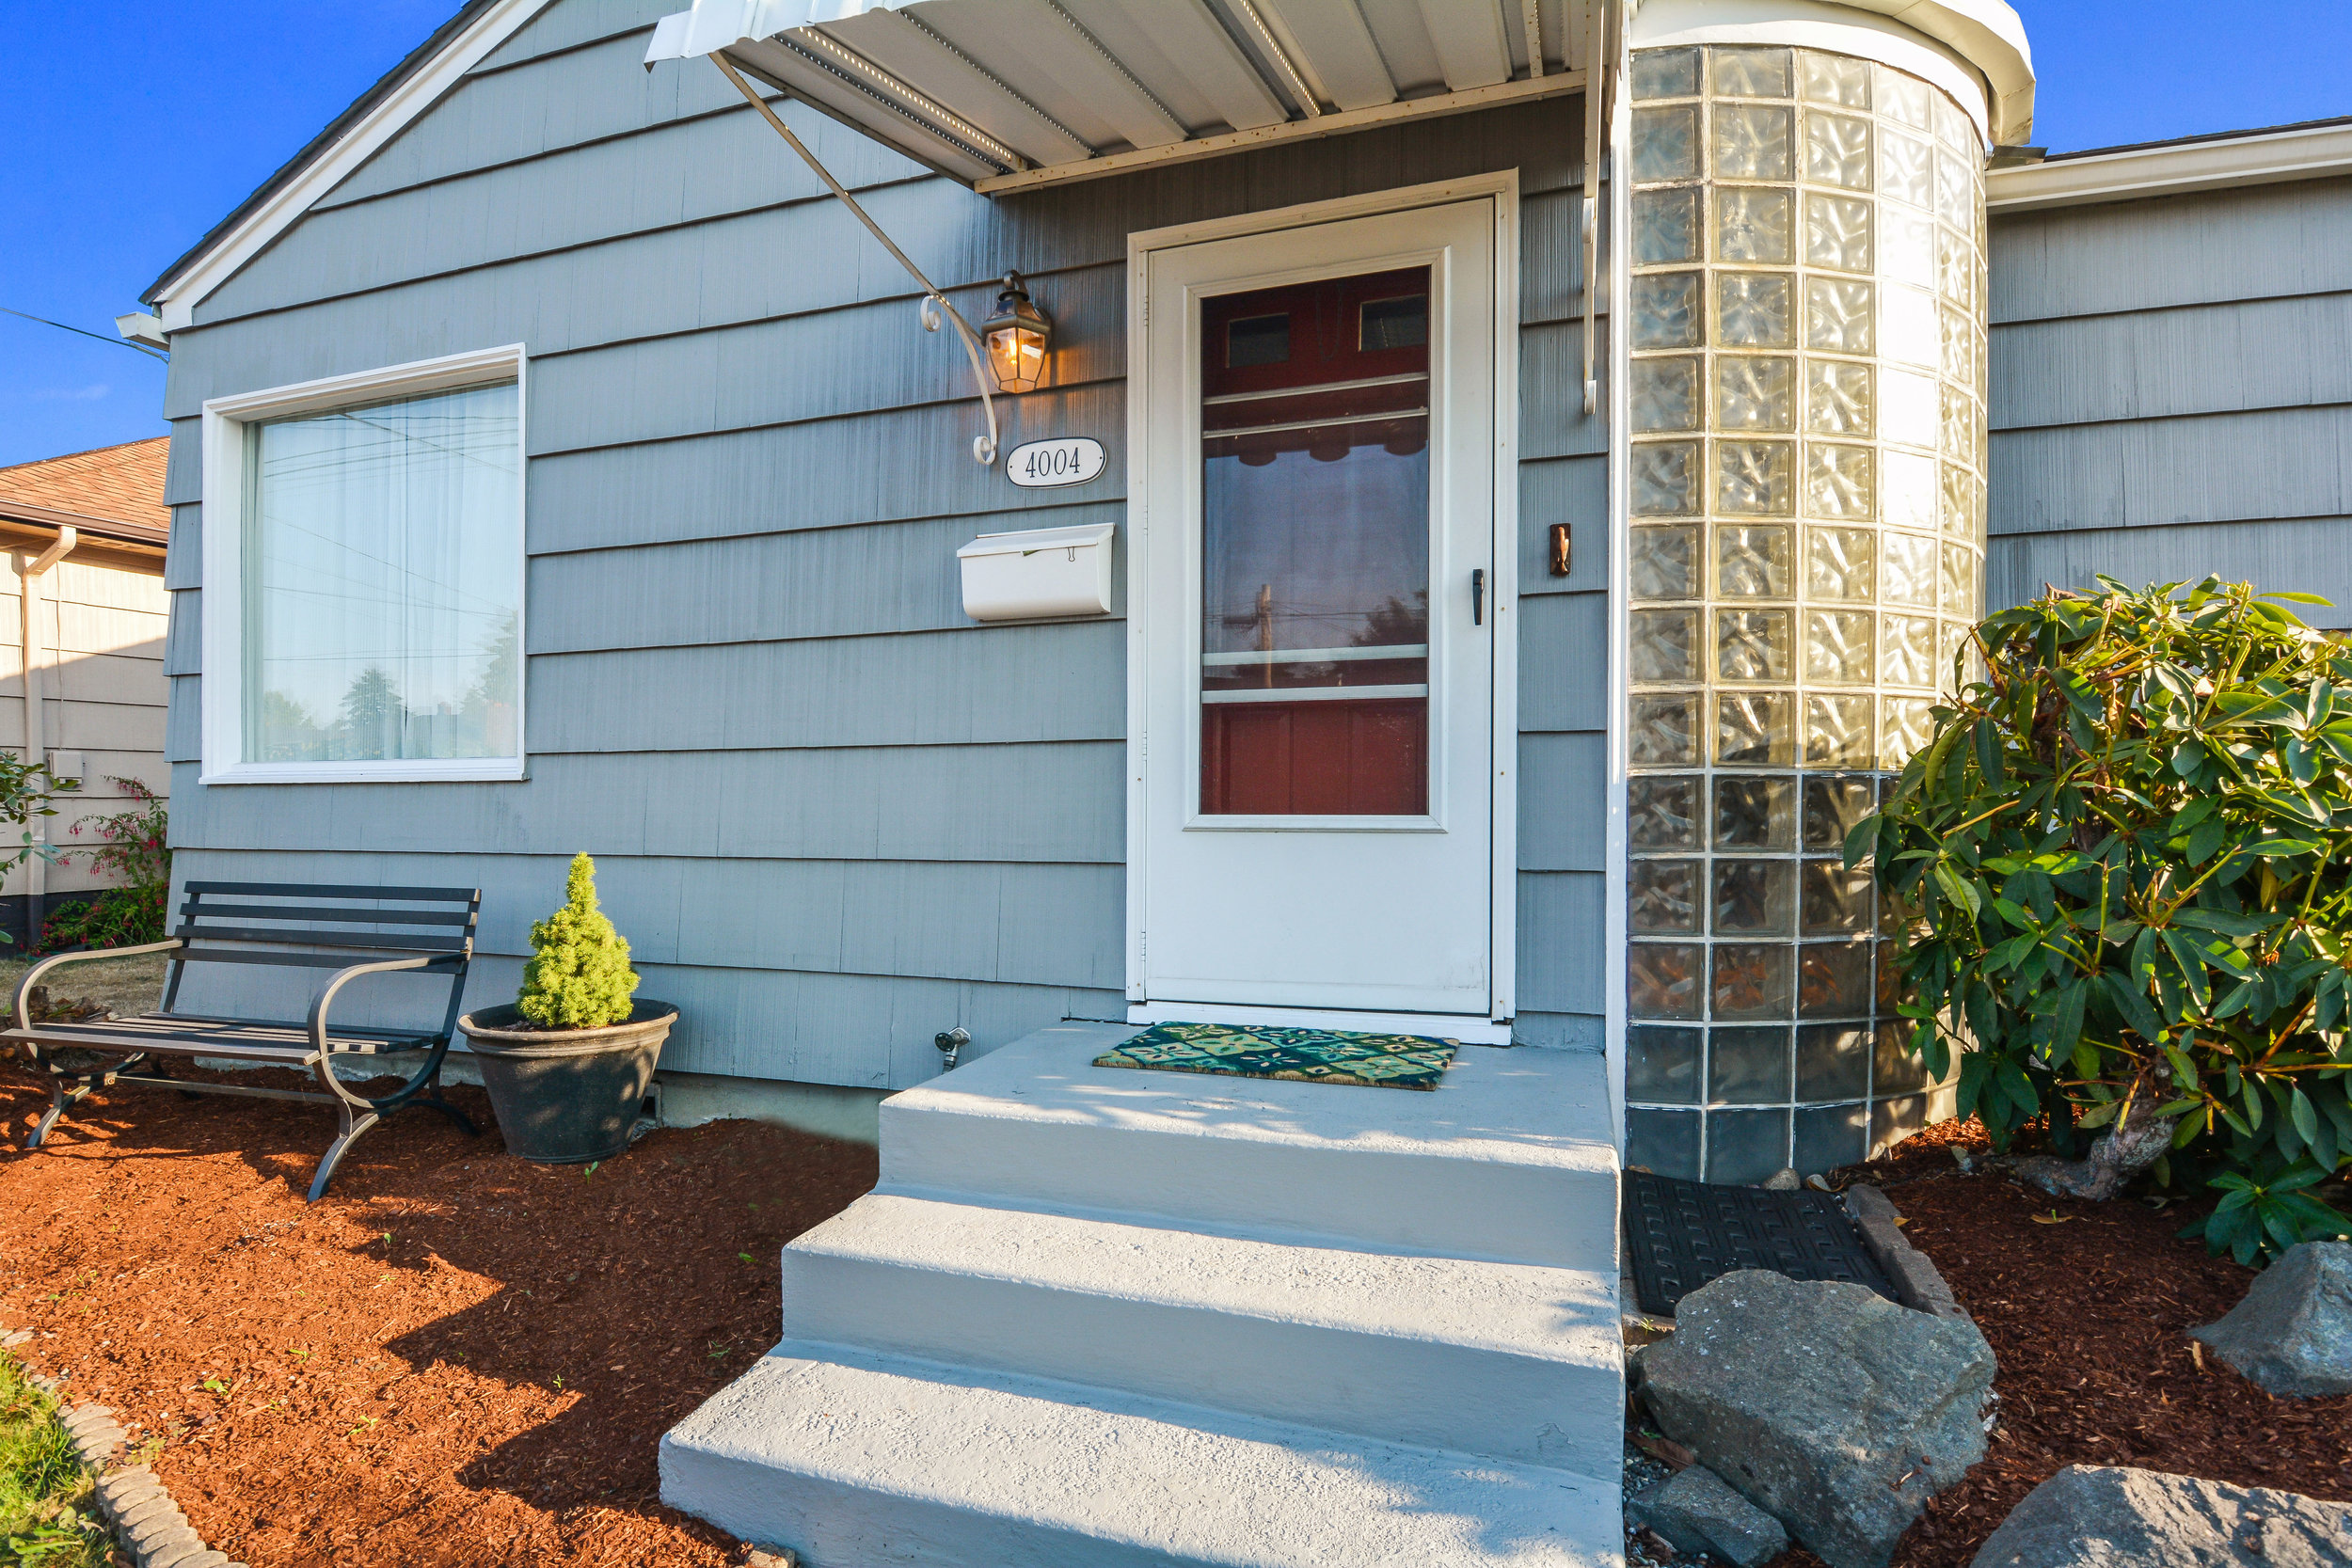 A closer look at the fresh paint, front porch and curved glass block entry at 4004 N 12th.